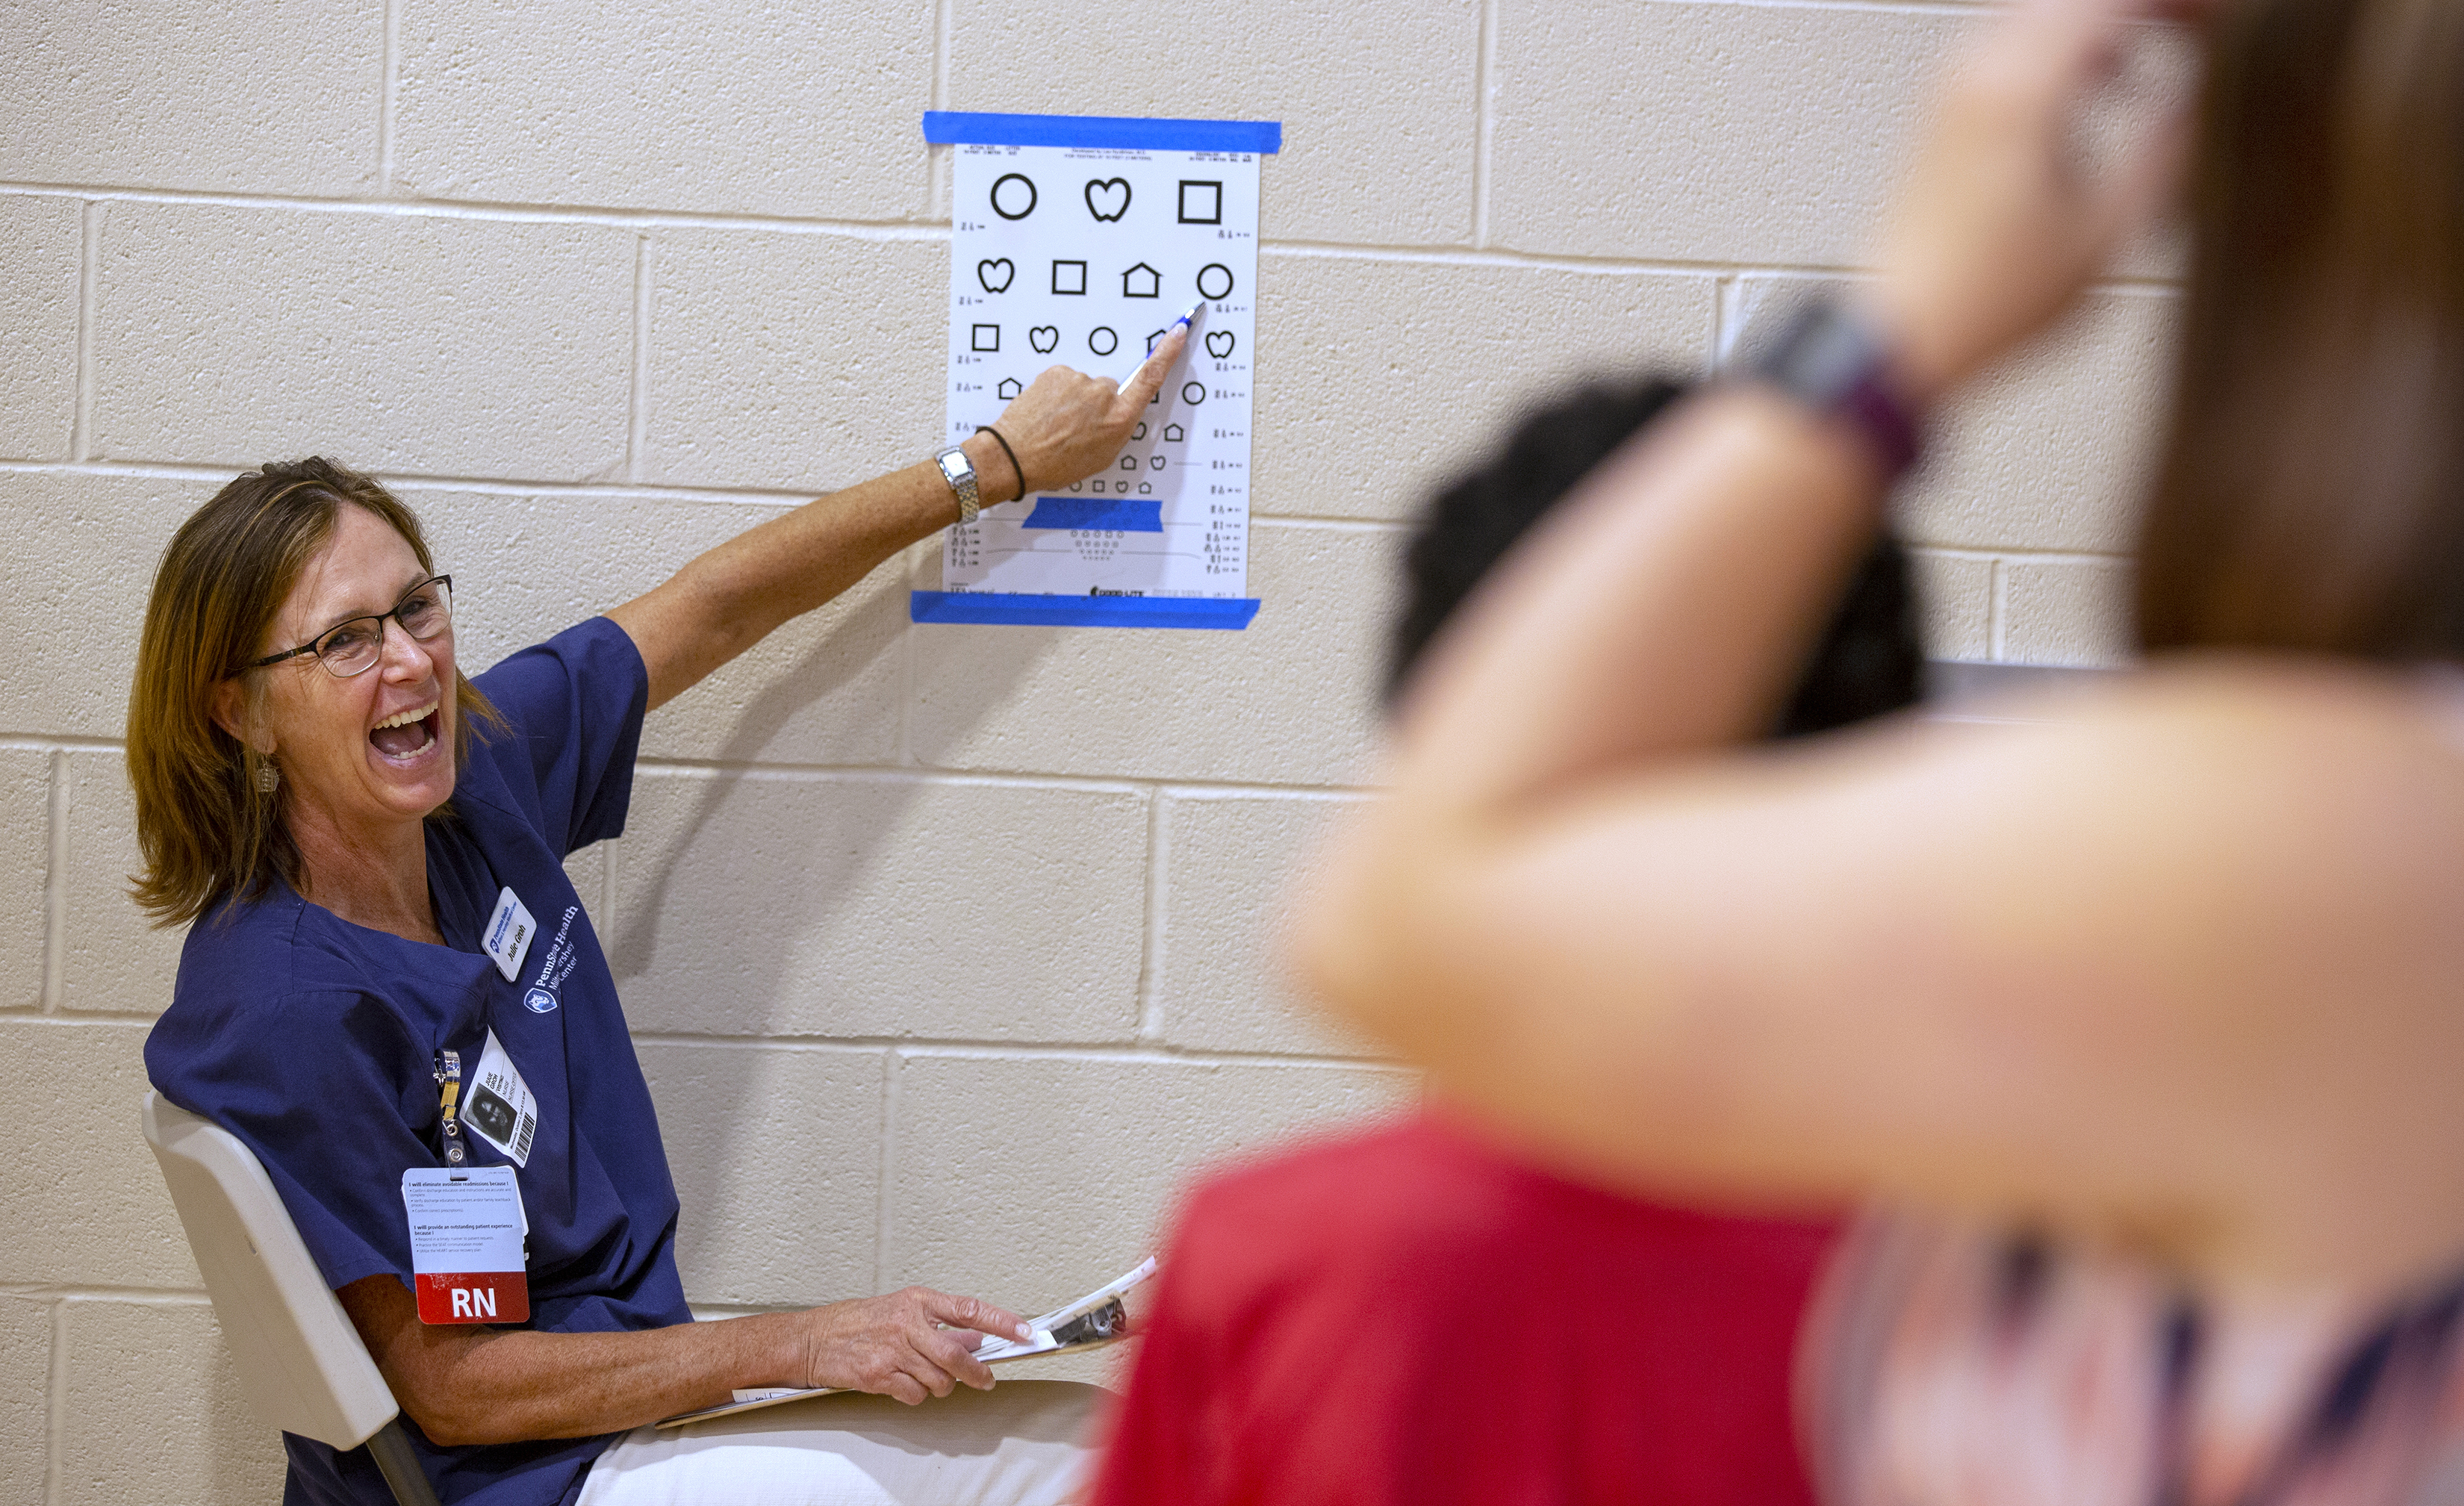 "Julie Groh smiles as she points to a shape on an eye chart. She has shoulder-length hair and is wearing glasses, scrubs and an ID badge with ""RN"" on it. Two children are in the foreground out of focus."